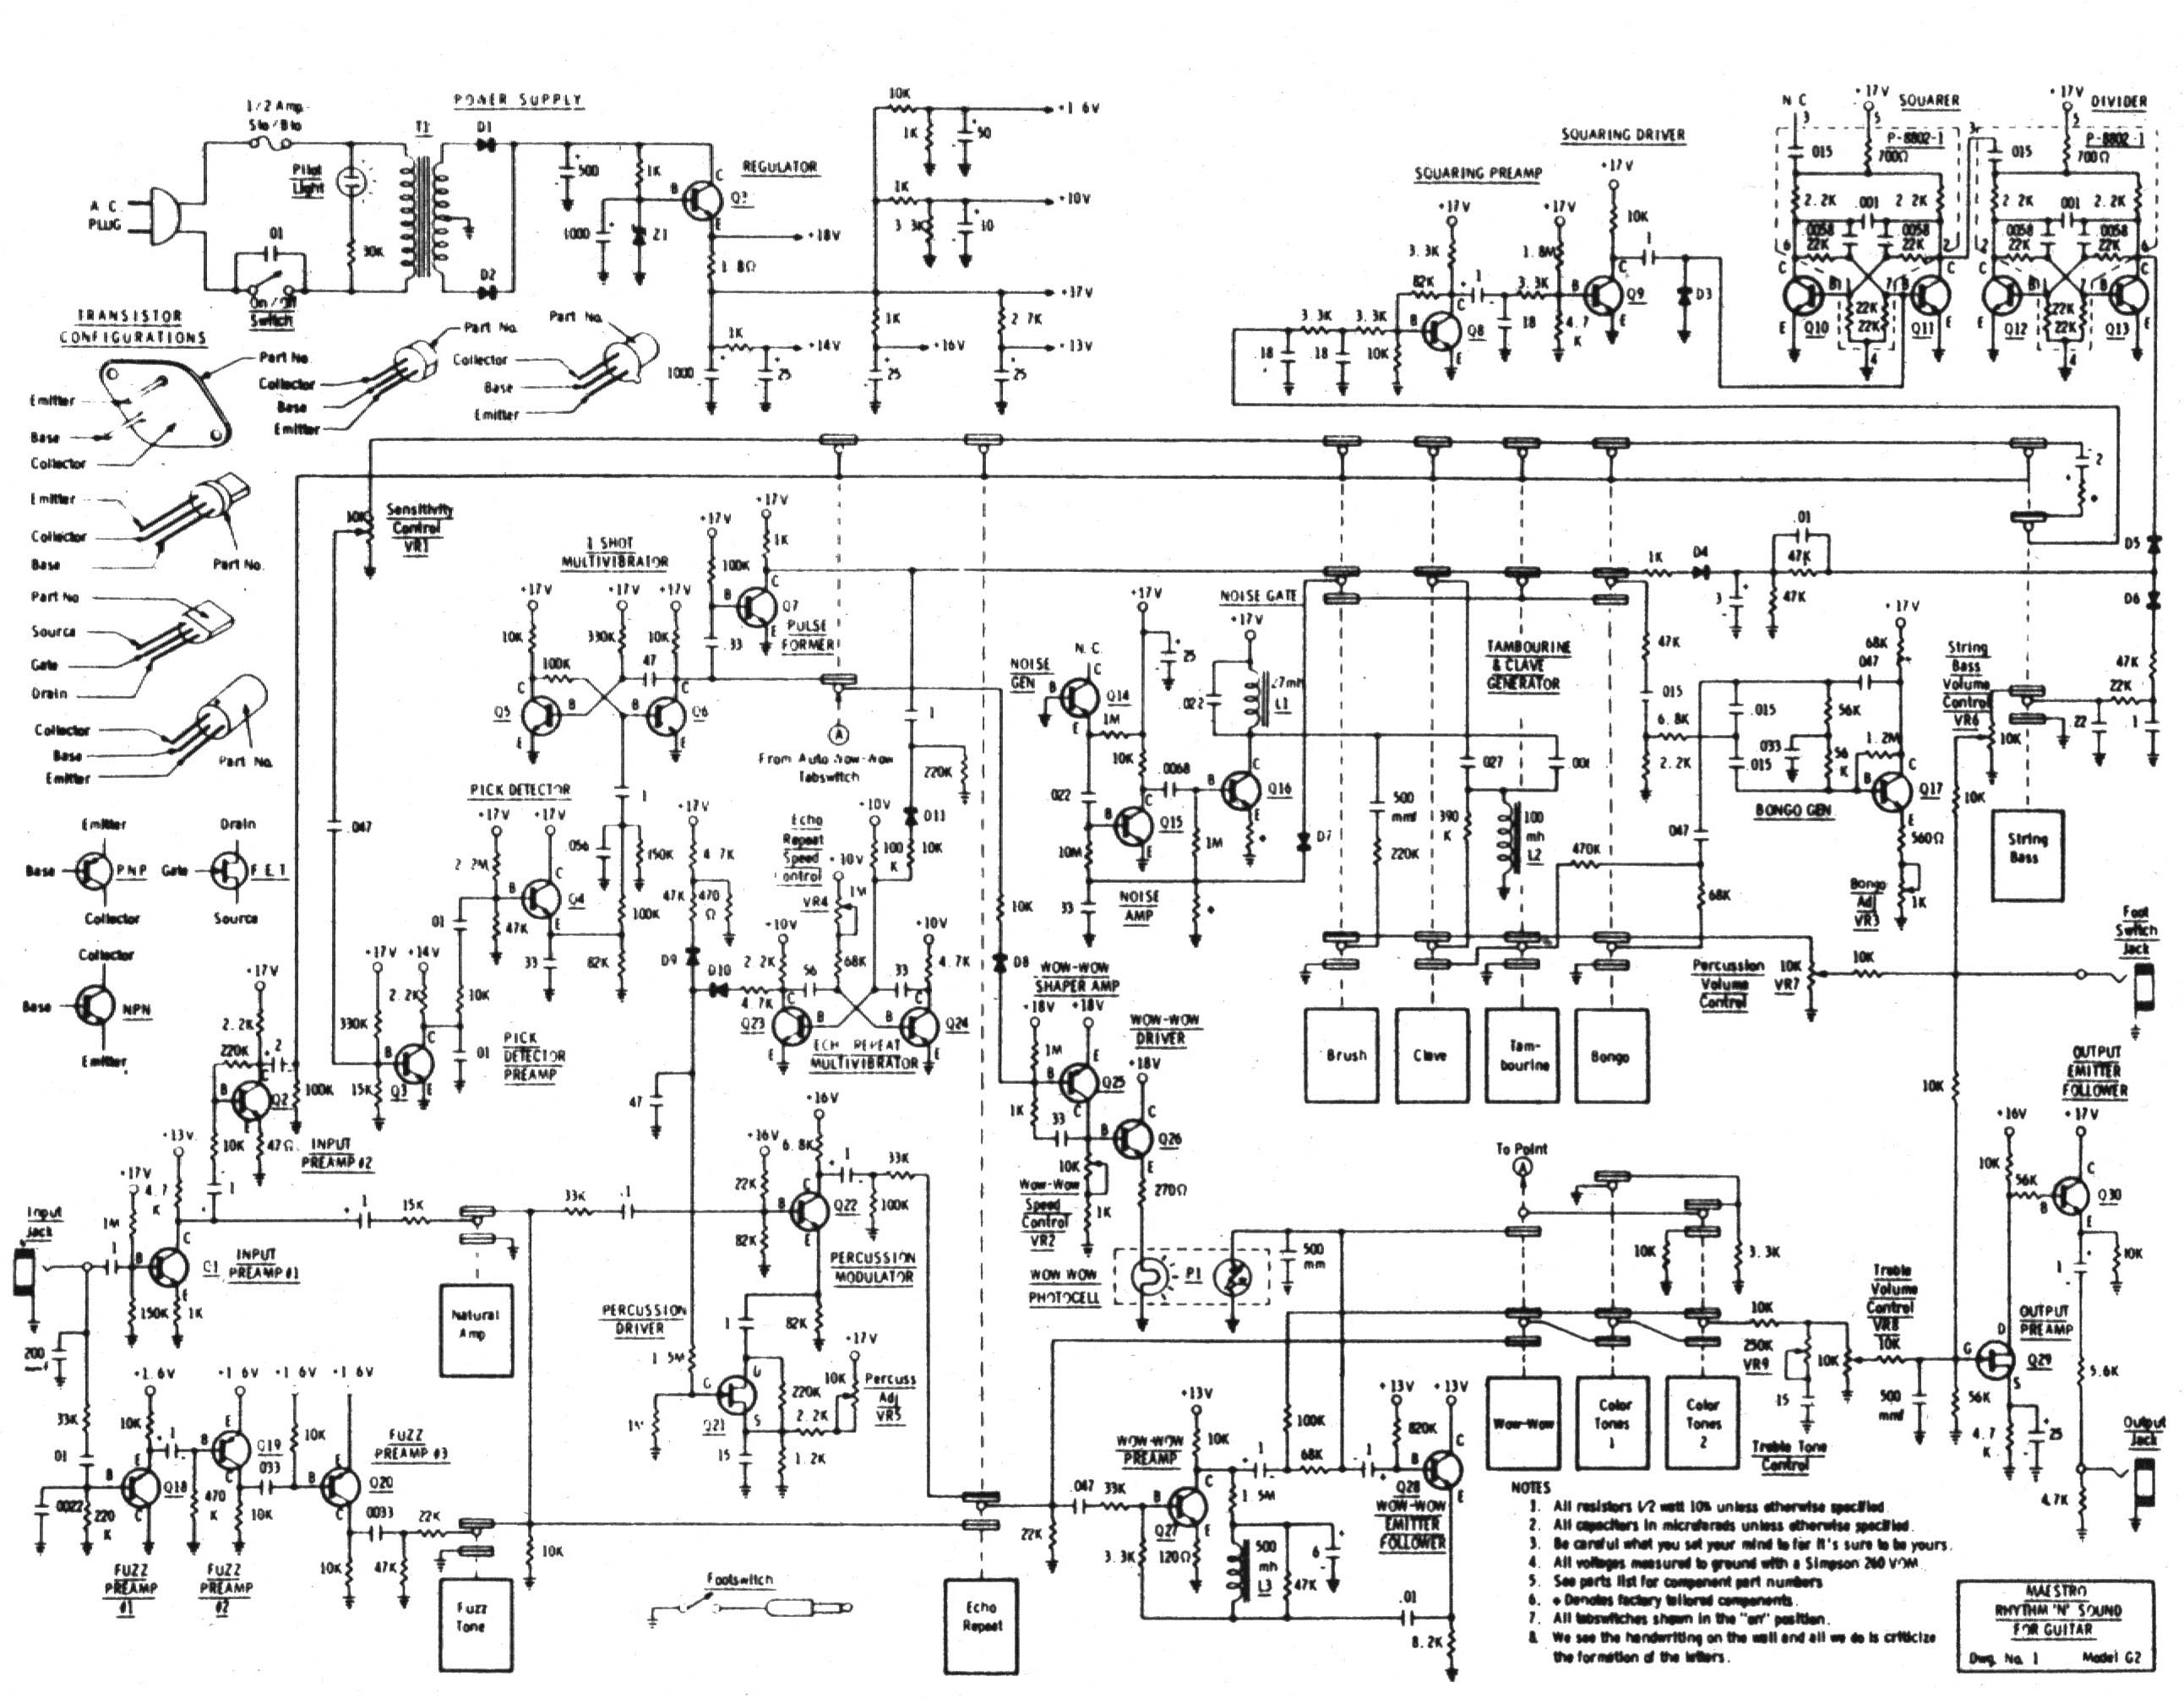 wiring diagram 2010 e 150 index of /diy/schematics/full synths drum synths and misc ... #15